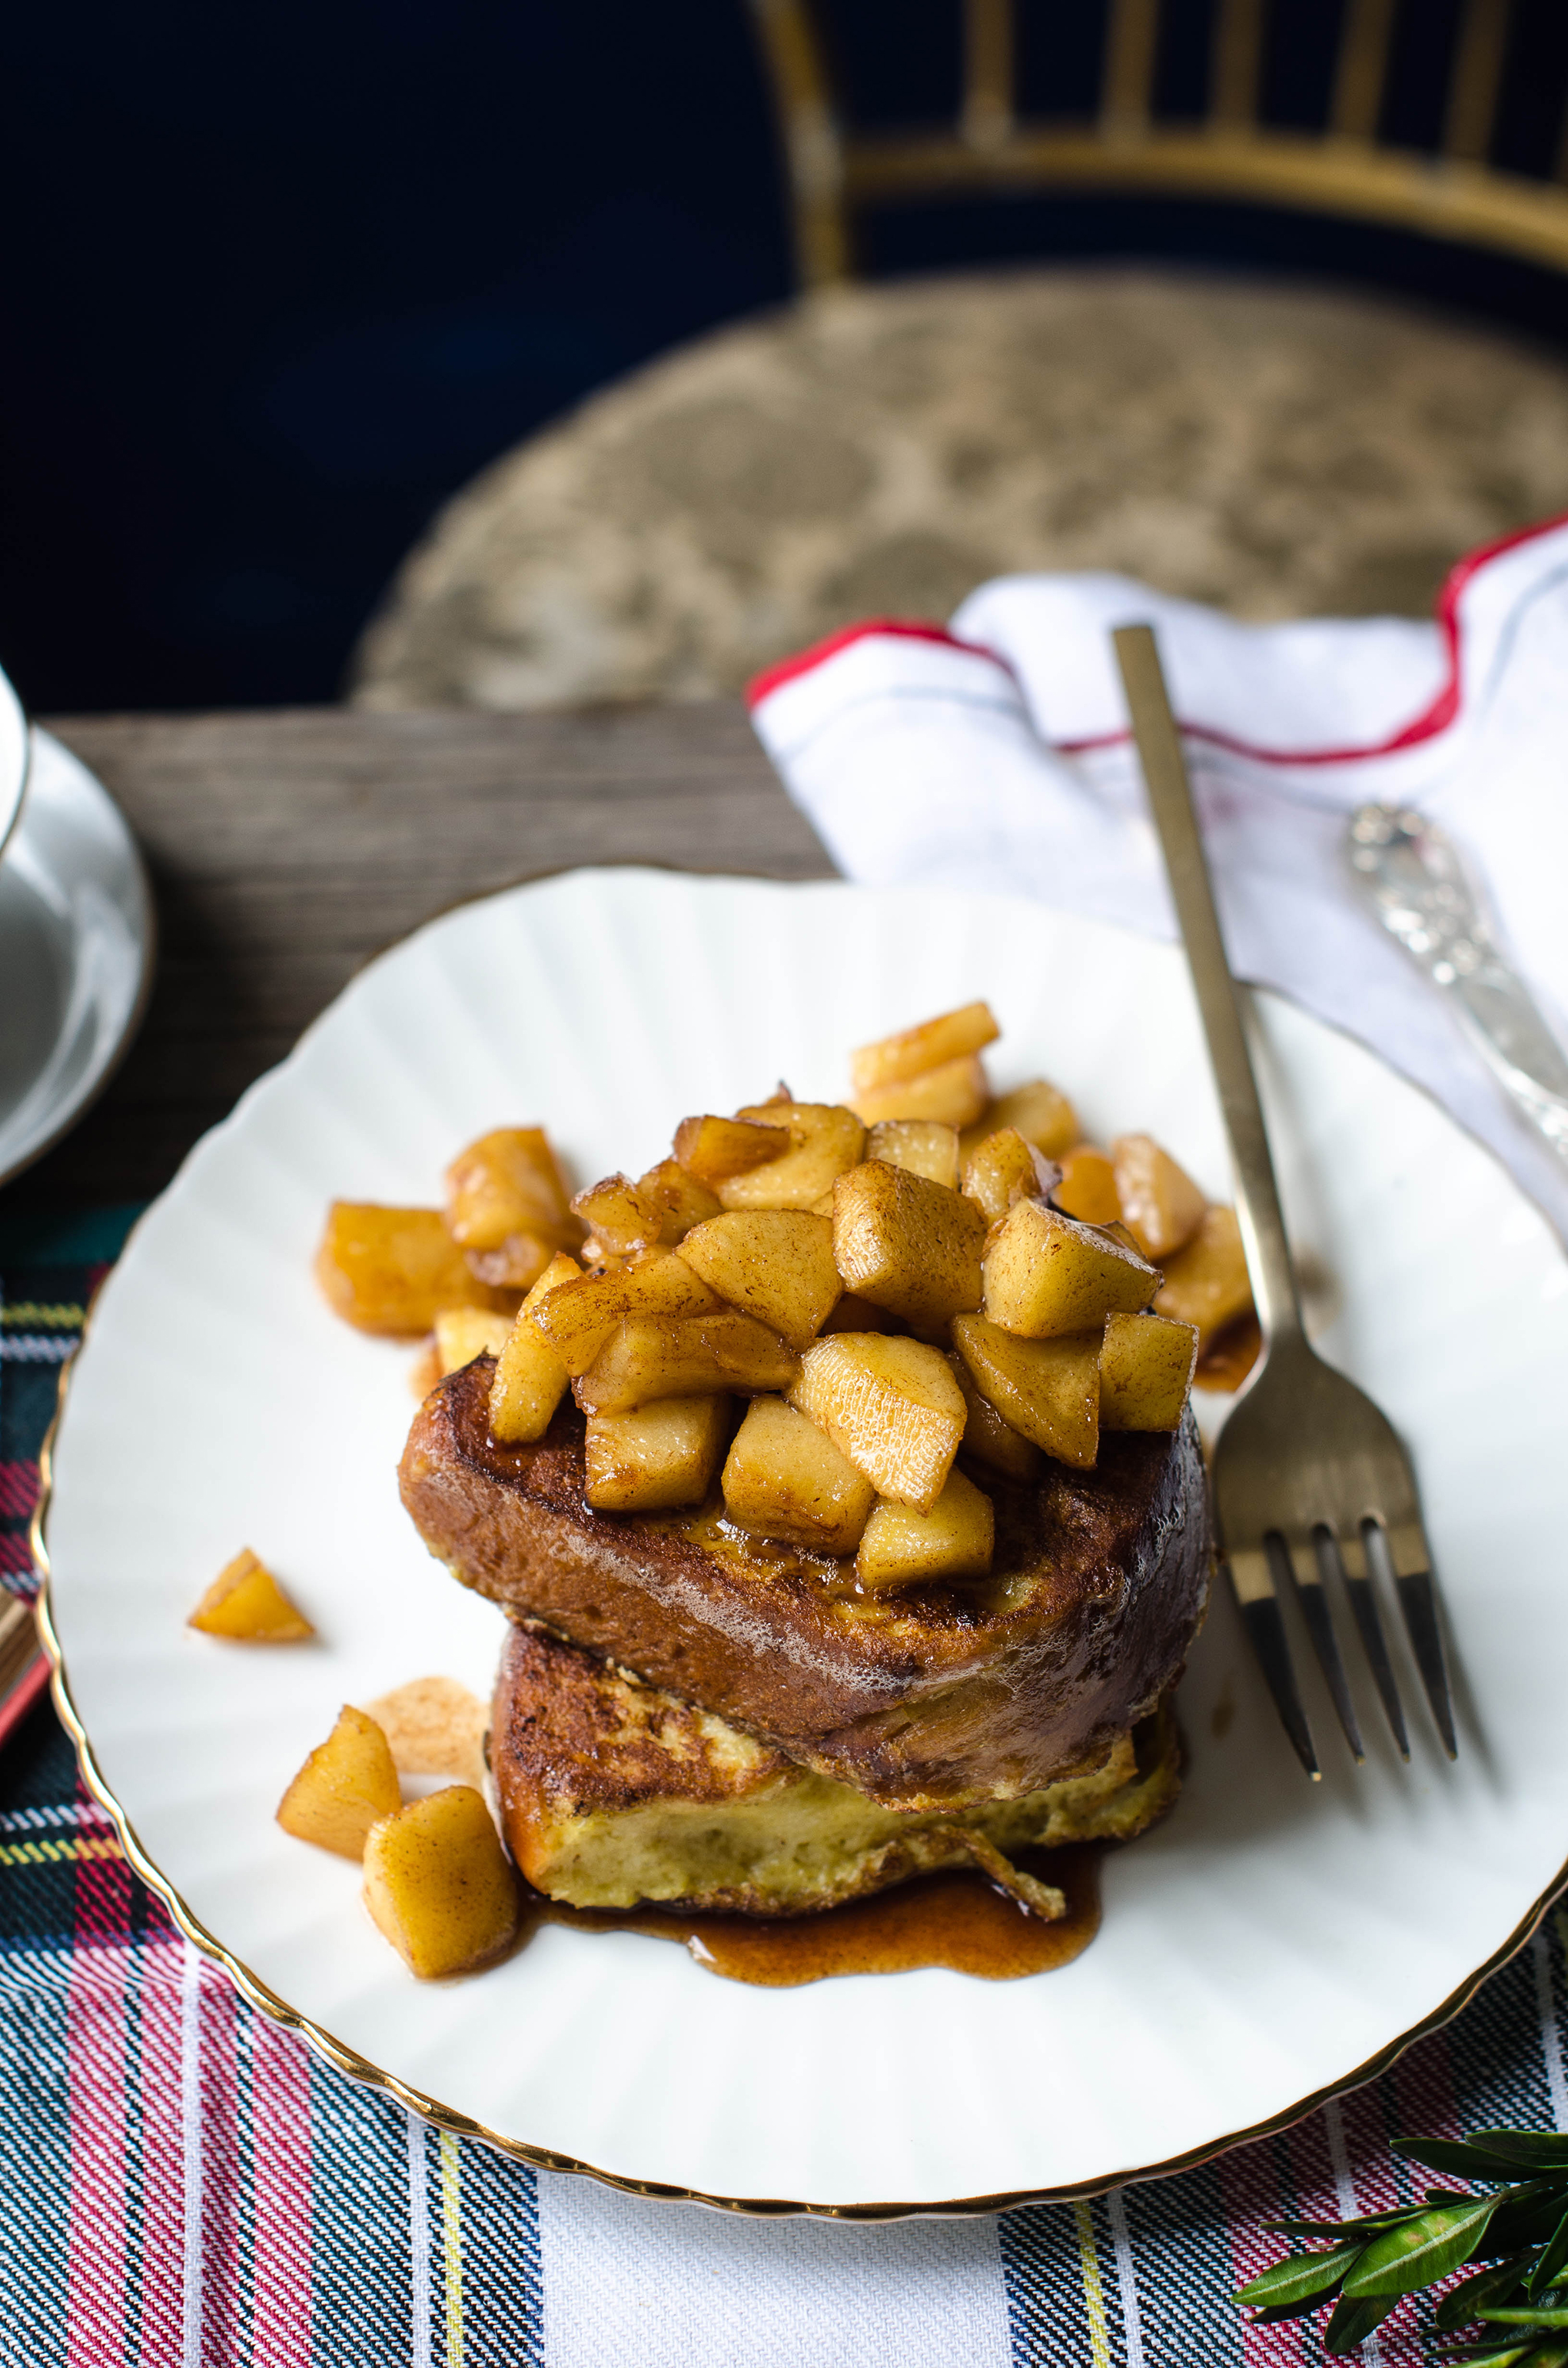 ROSE & IVY JOURNAL CHALLAH FRENCH TOAST WITH MAPEL APPLE COMPOTE